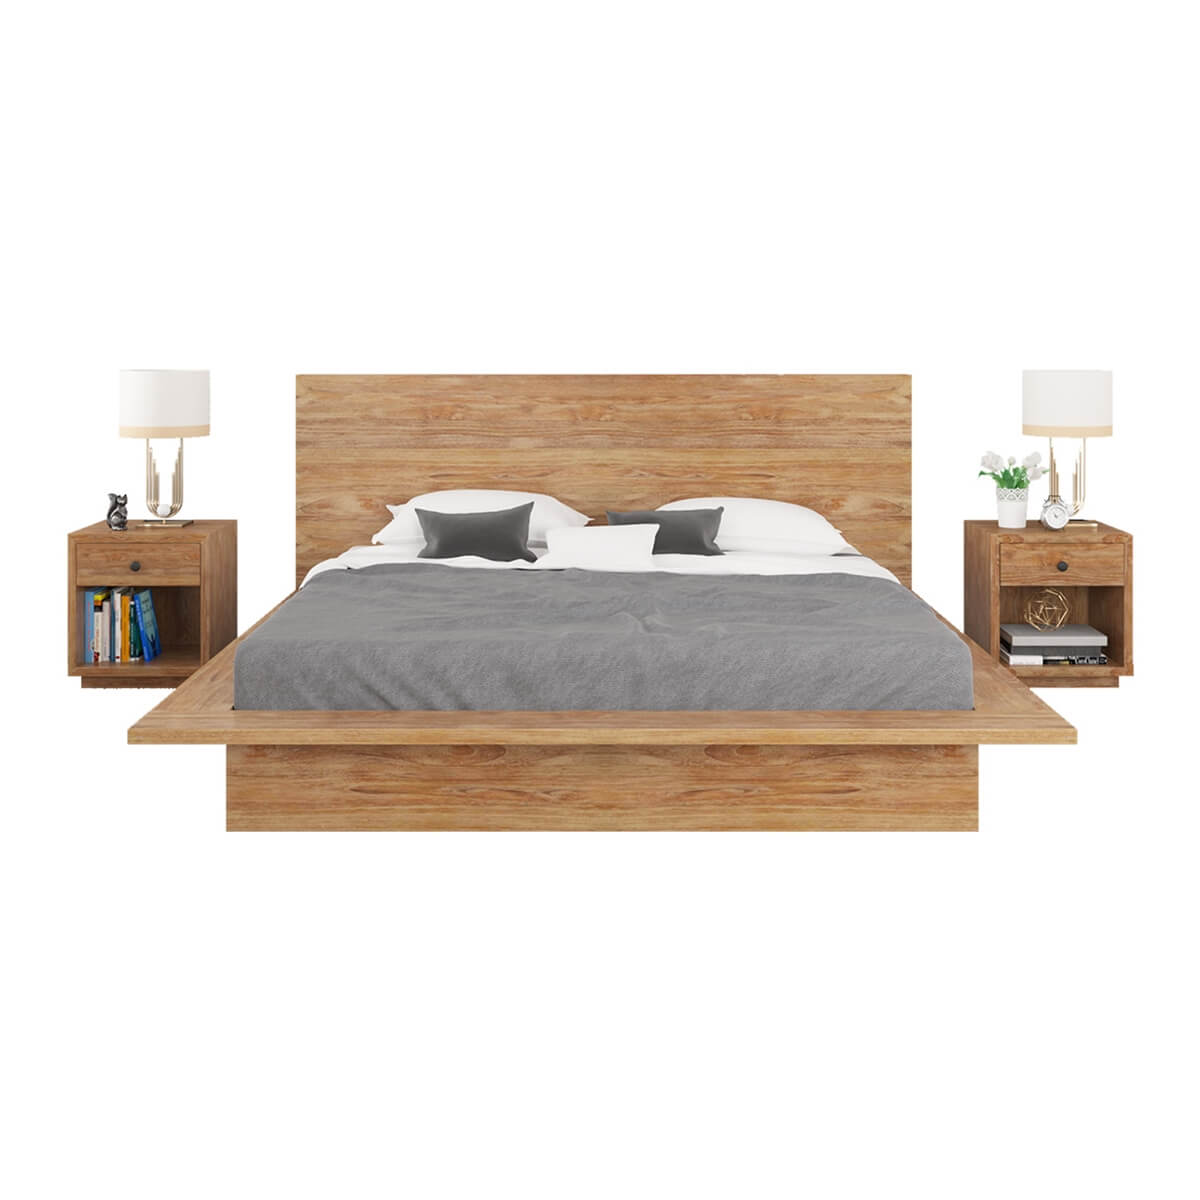 Britain rustic teak wood platform bed frame Rustic bed frames